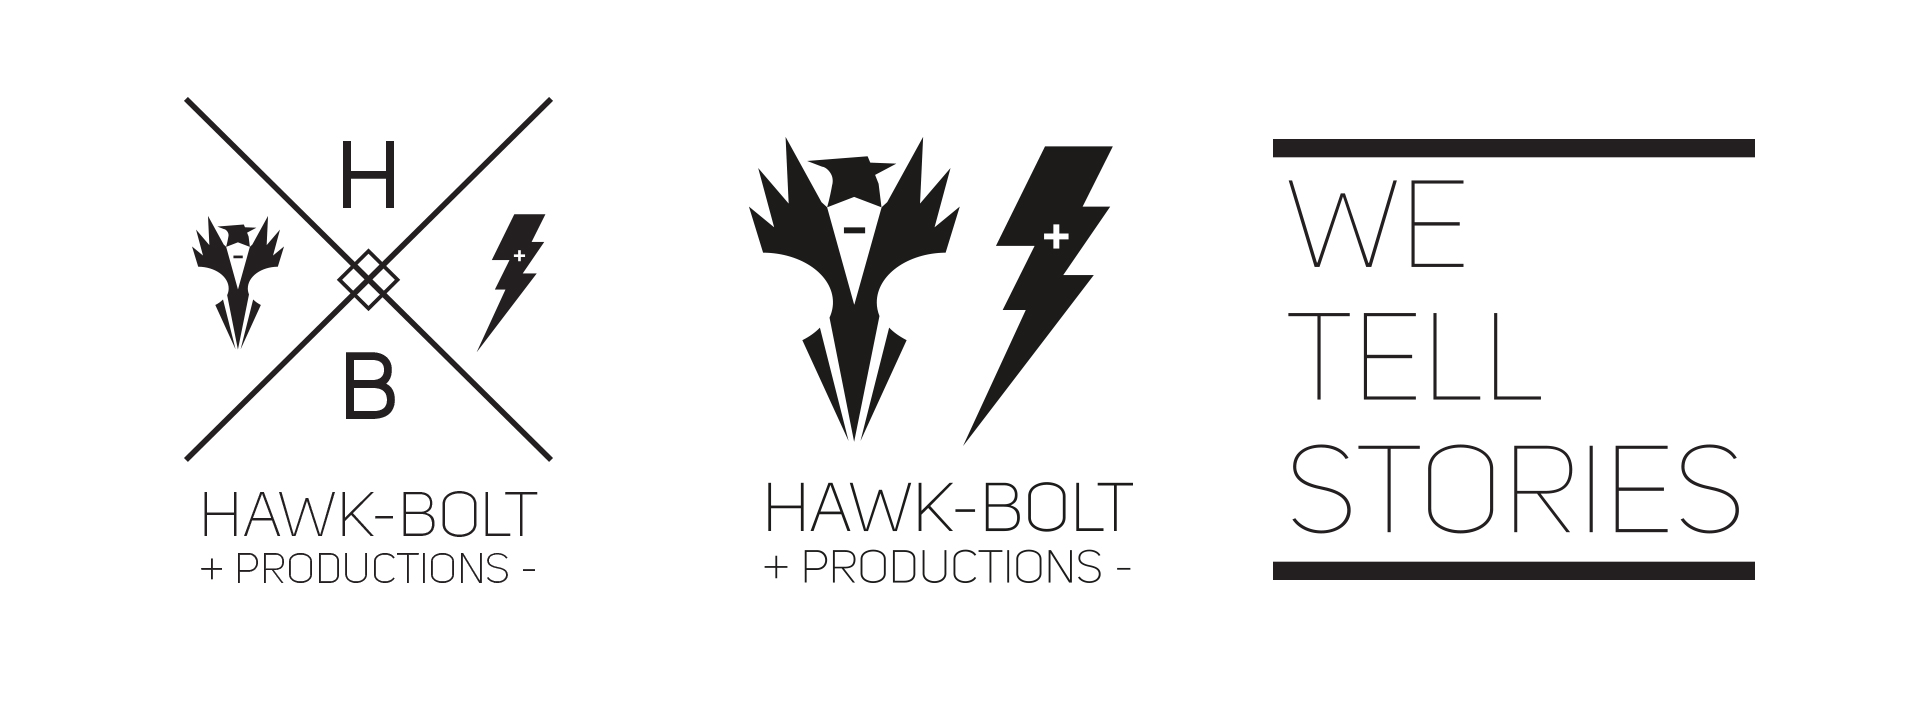 HawkBolt video production logo design mockup